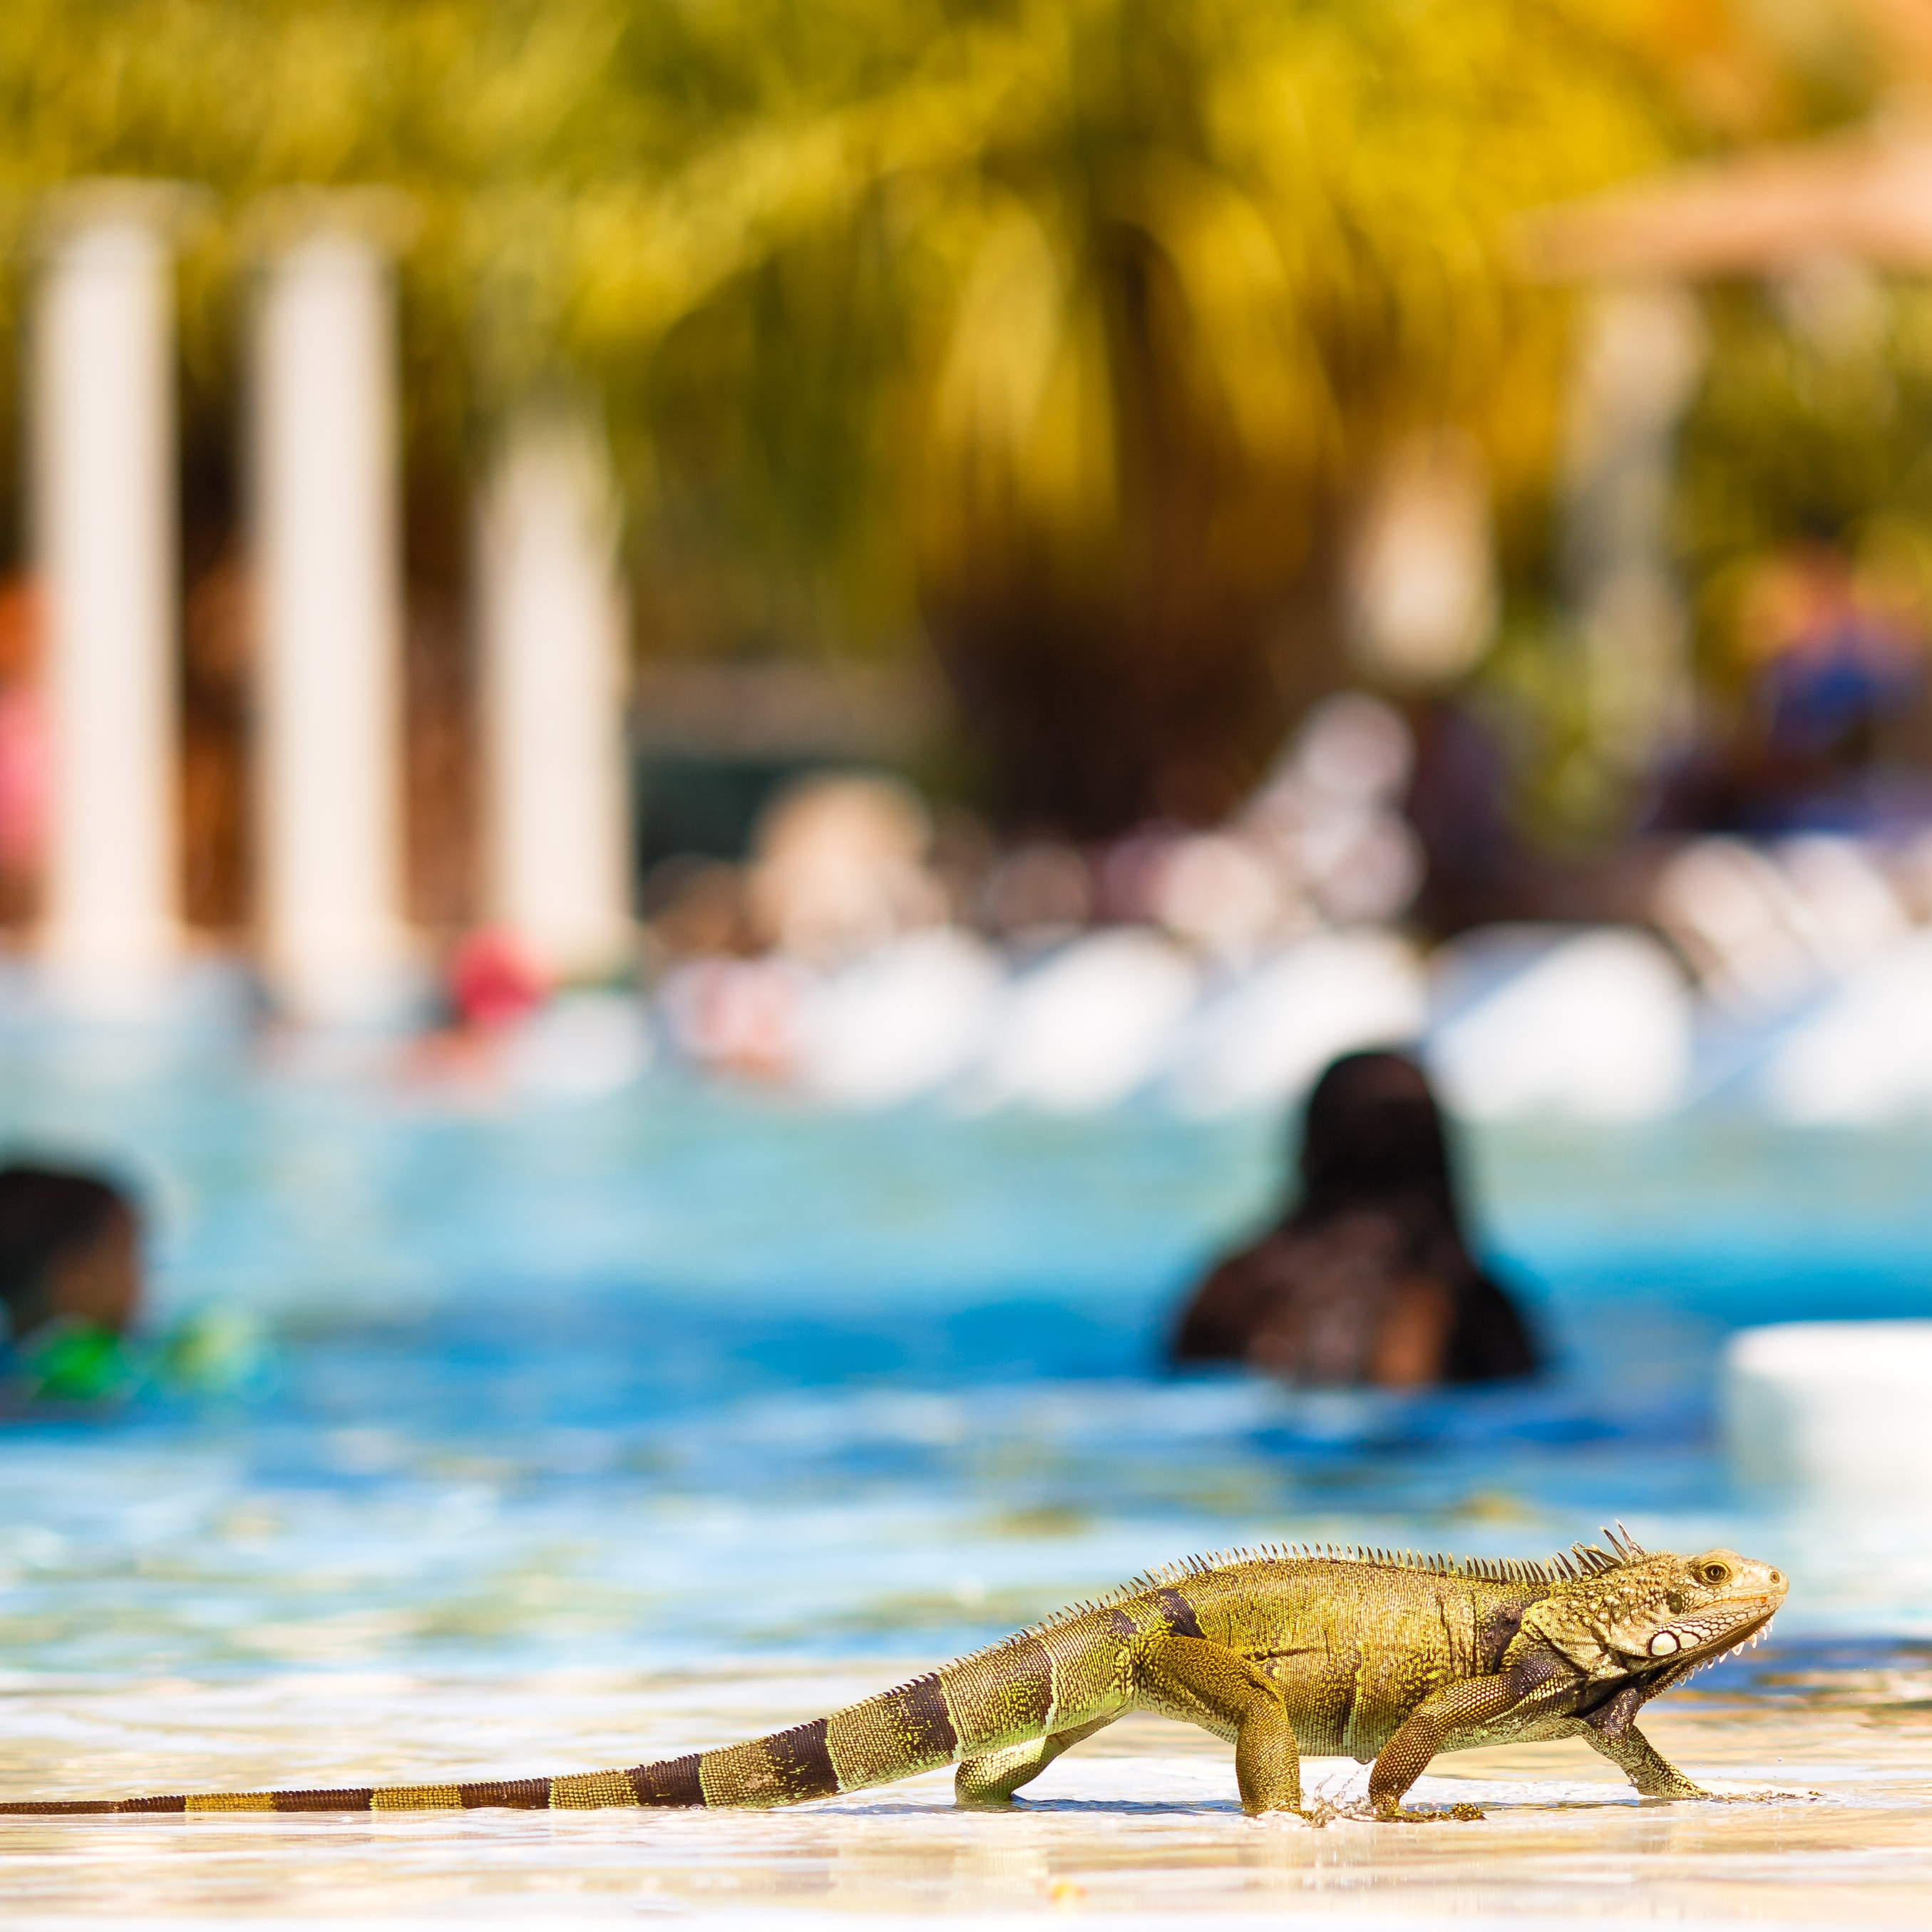 Iguana am Pool Curacao